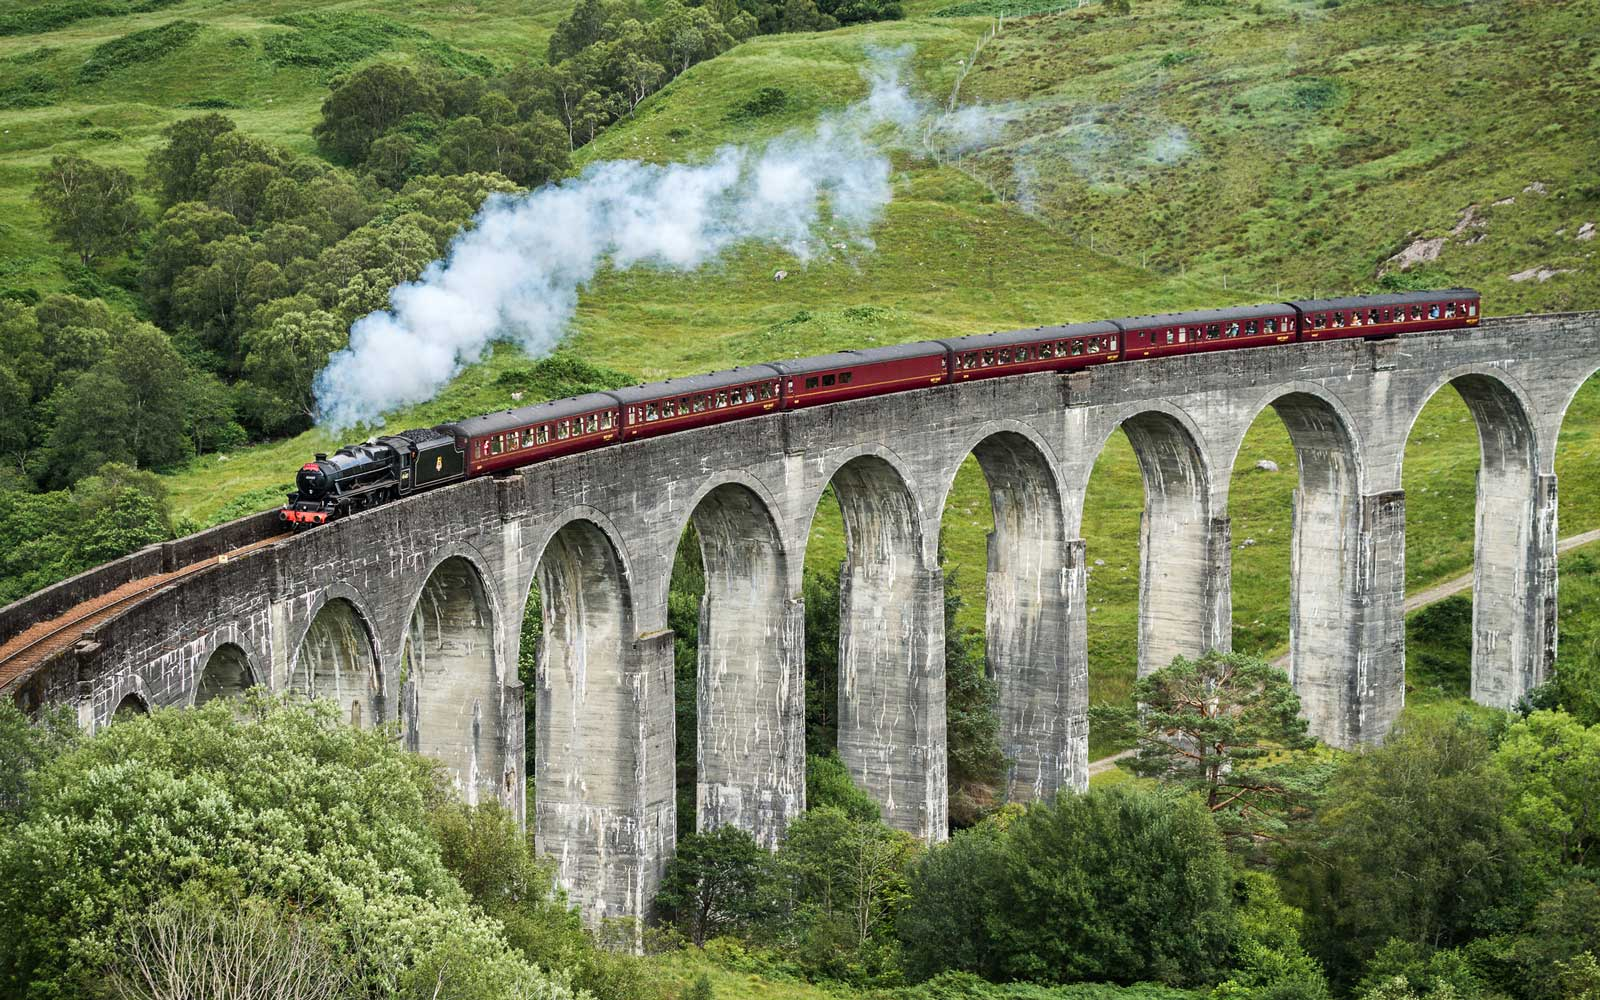 Harry Potter Fans Can Tour the Scottish Countryside on a Real-life Hogwarts Express